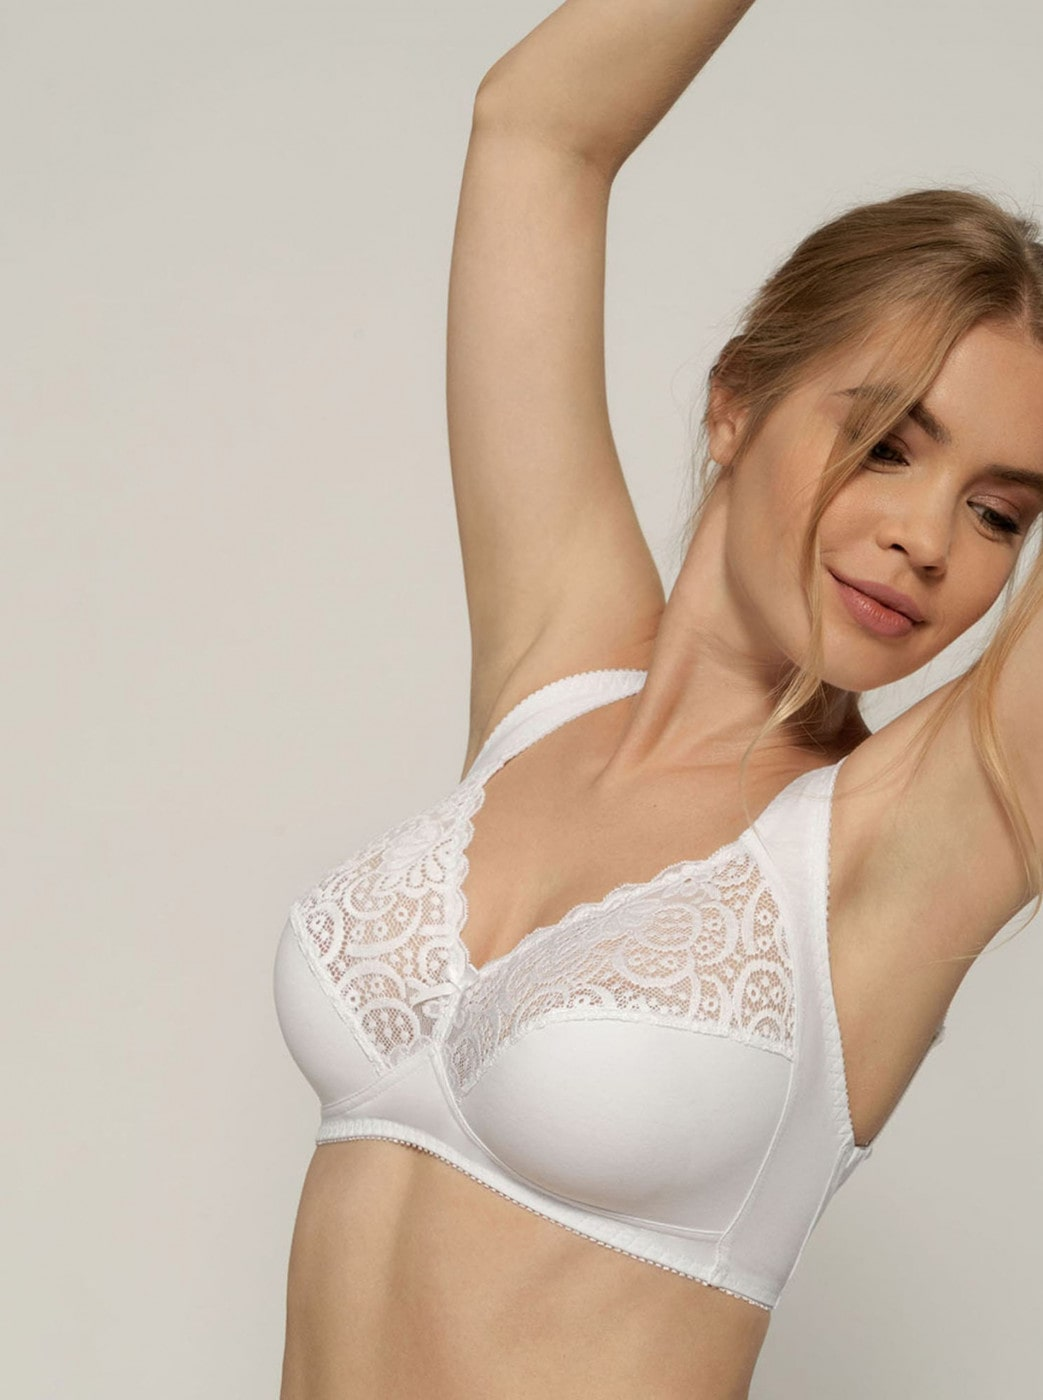 Dorina Georgina's white bra with lace